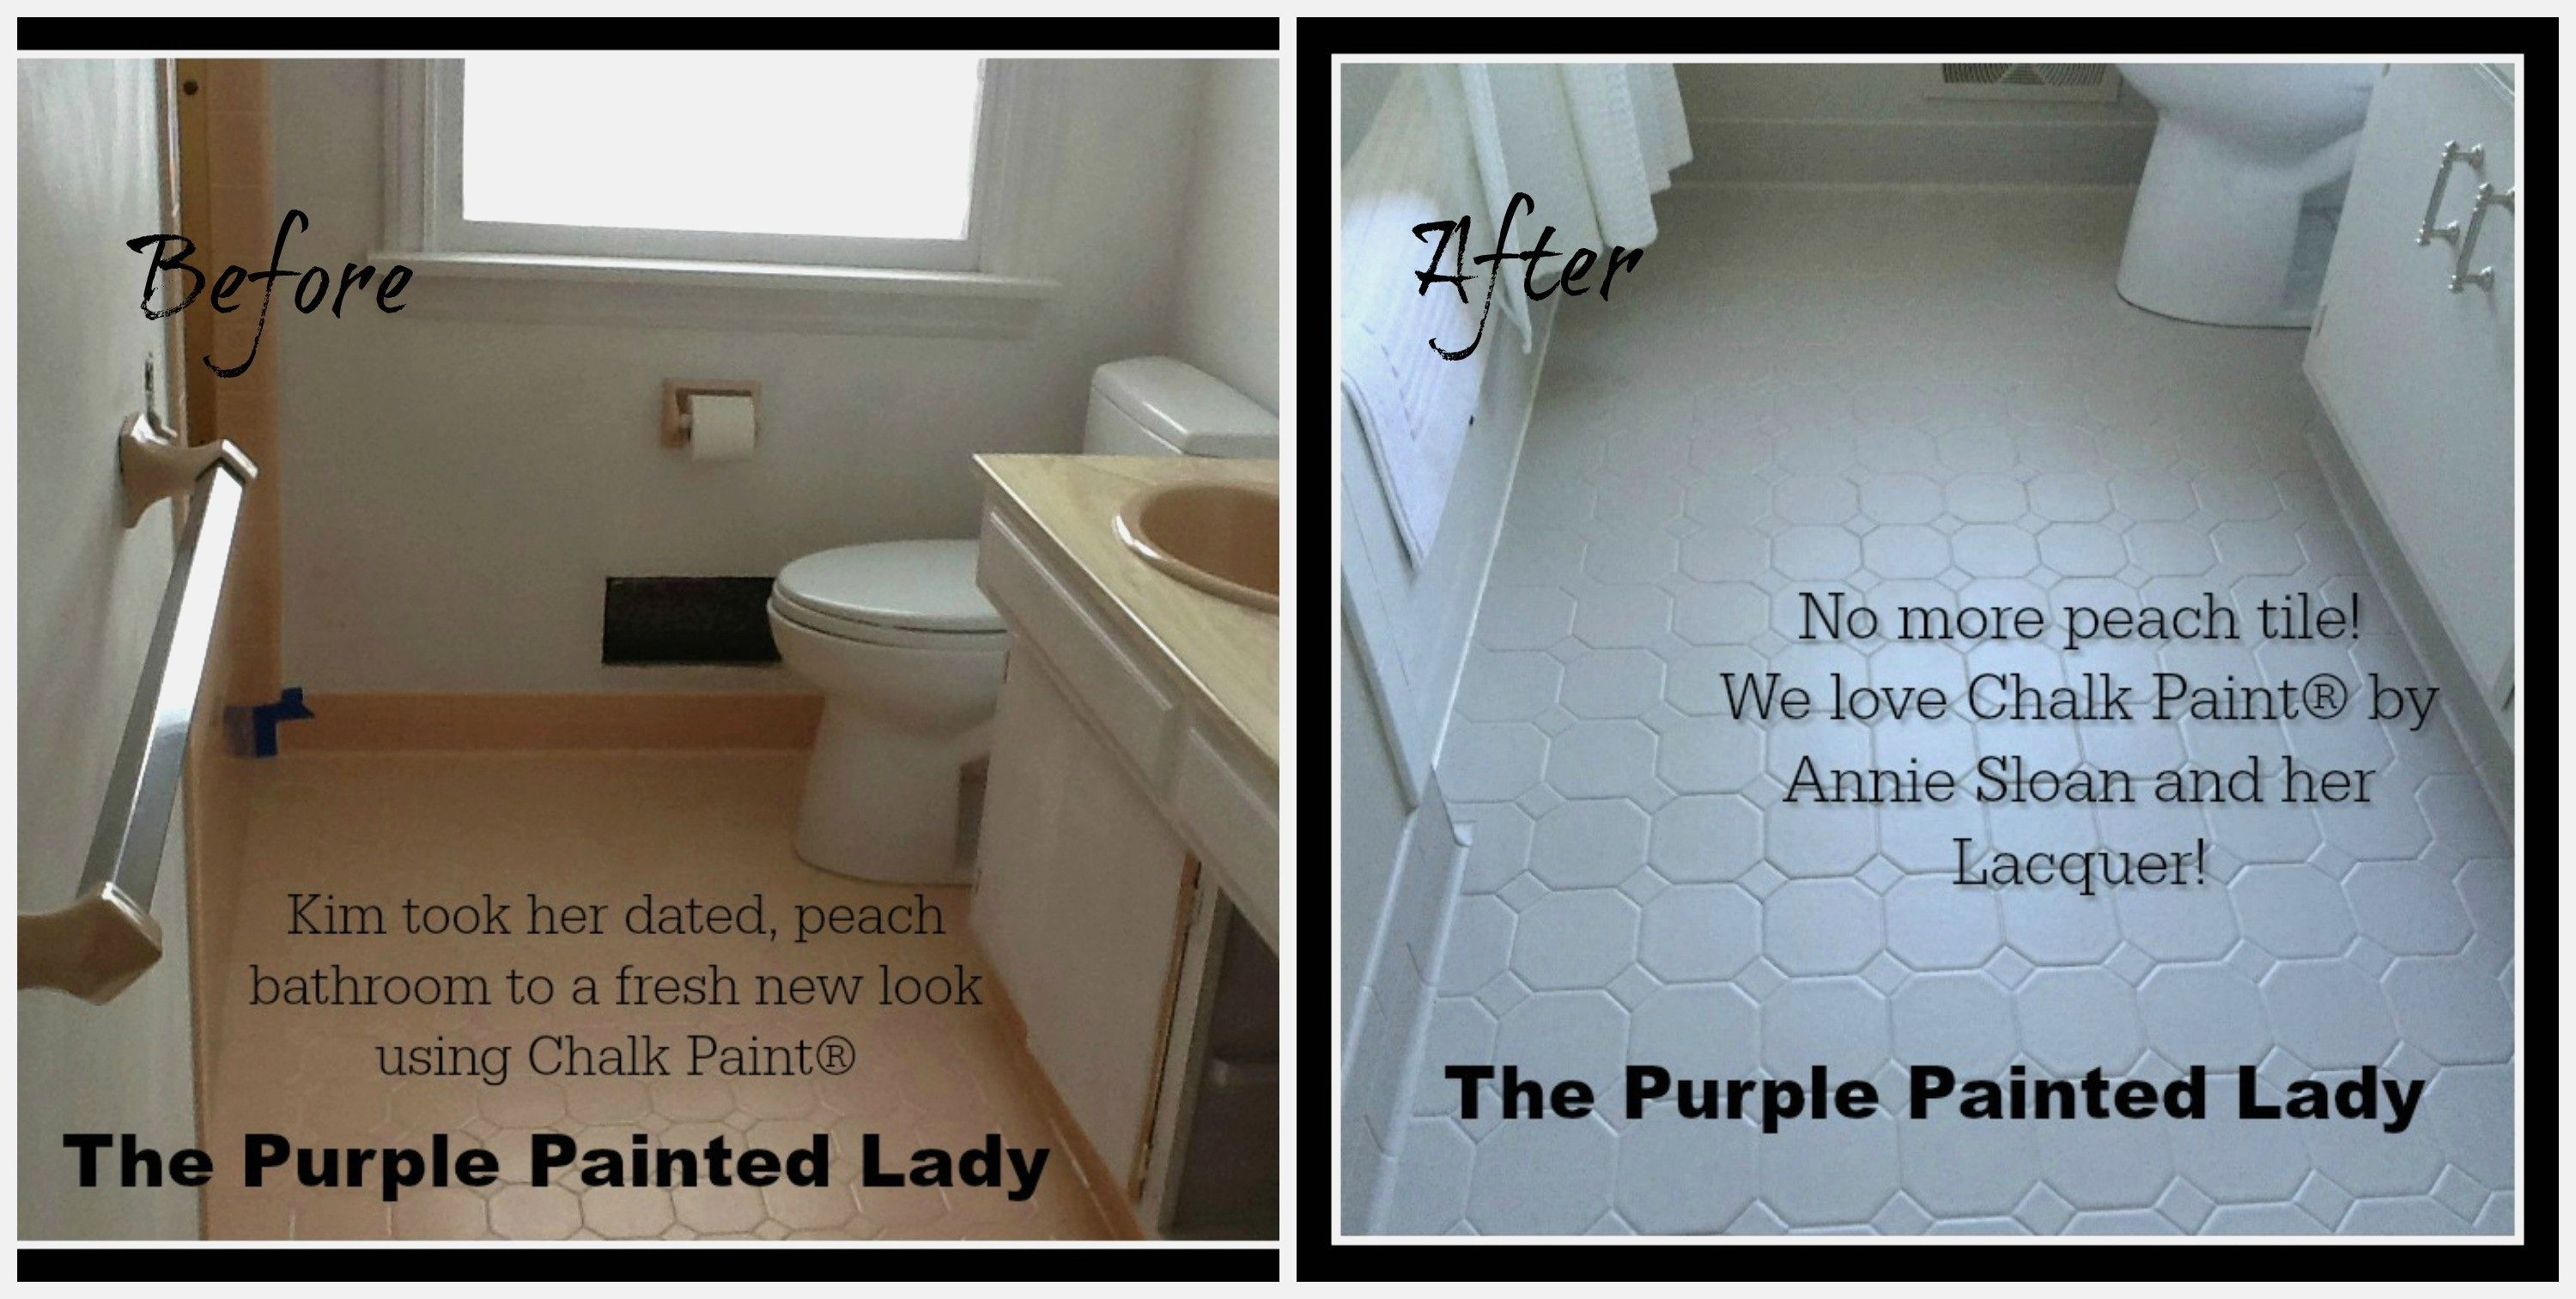 finest how to paint a bathroom sink pattern-Superb How to Paint A Bathroom Sink Photo